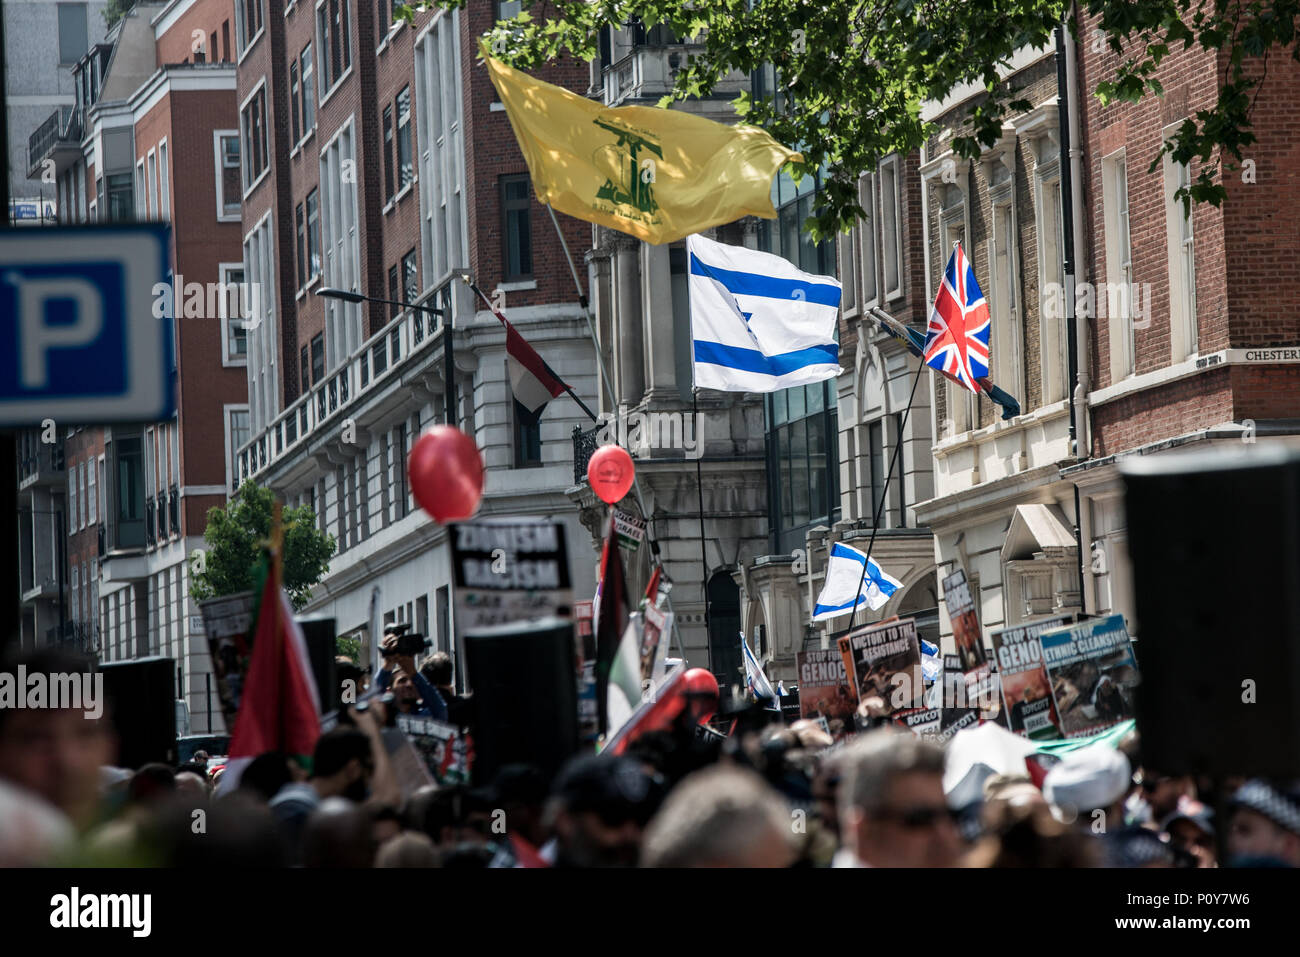 London, UK. 10th June, 2018. A Hezbollah flag in front the pro-zionist counter-demo.Hundreds of anti-Israel protesters marched through the streets on the annual Al Quds Day. Started by the Ayatollah Khomeini in 1979 to show support for Palestine and oppose the existence of Israel and the counter protest from the Zionist Federation. Credit: Brais G. Rouco/SOPA Images/ZUMA Wire/Alamy Live News - Stock Image